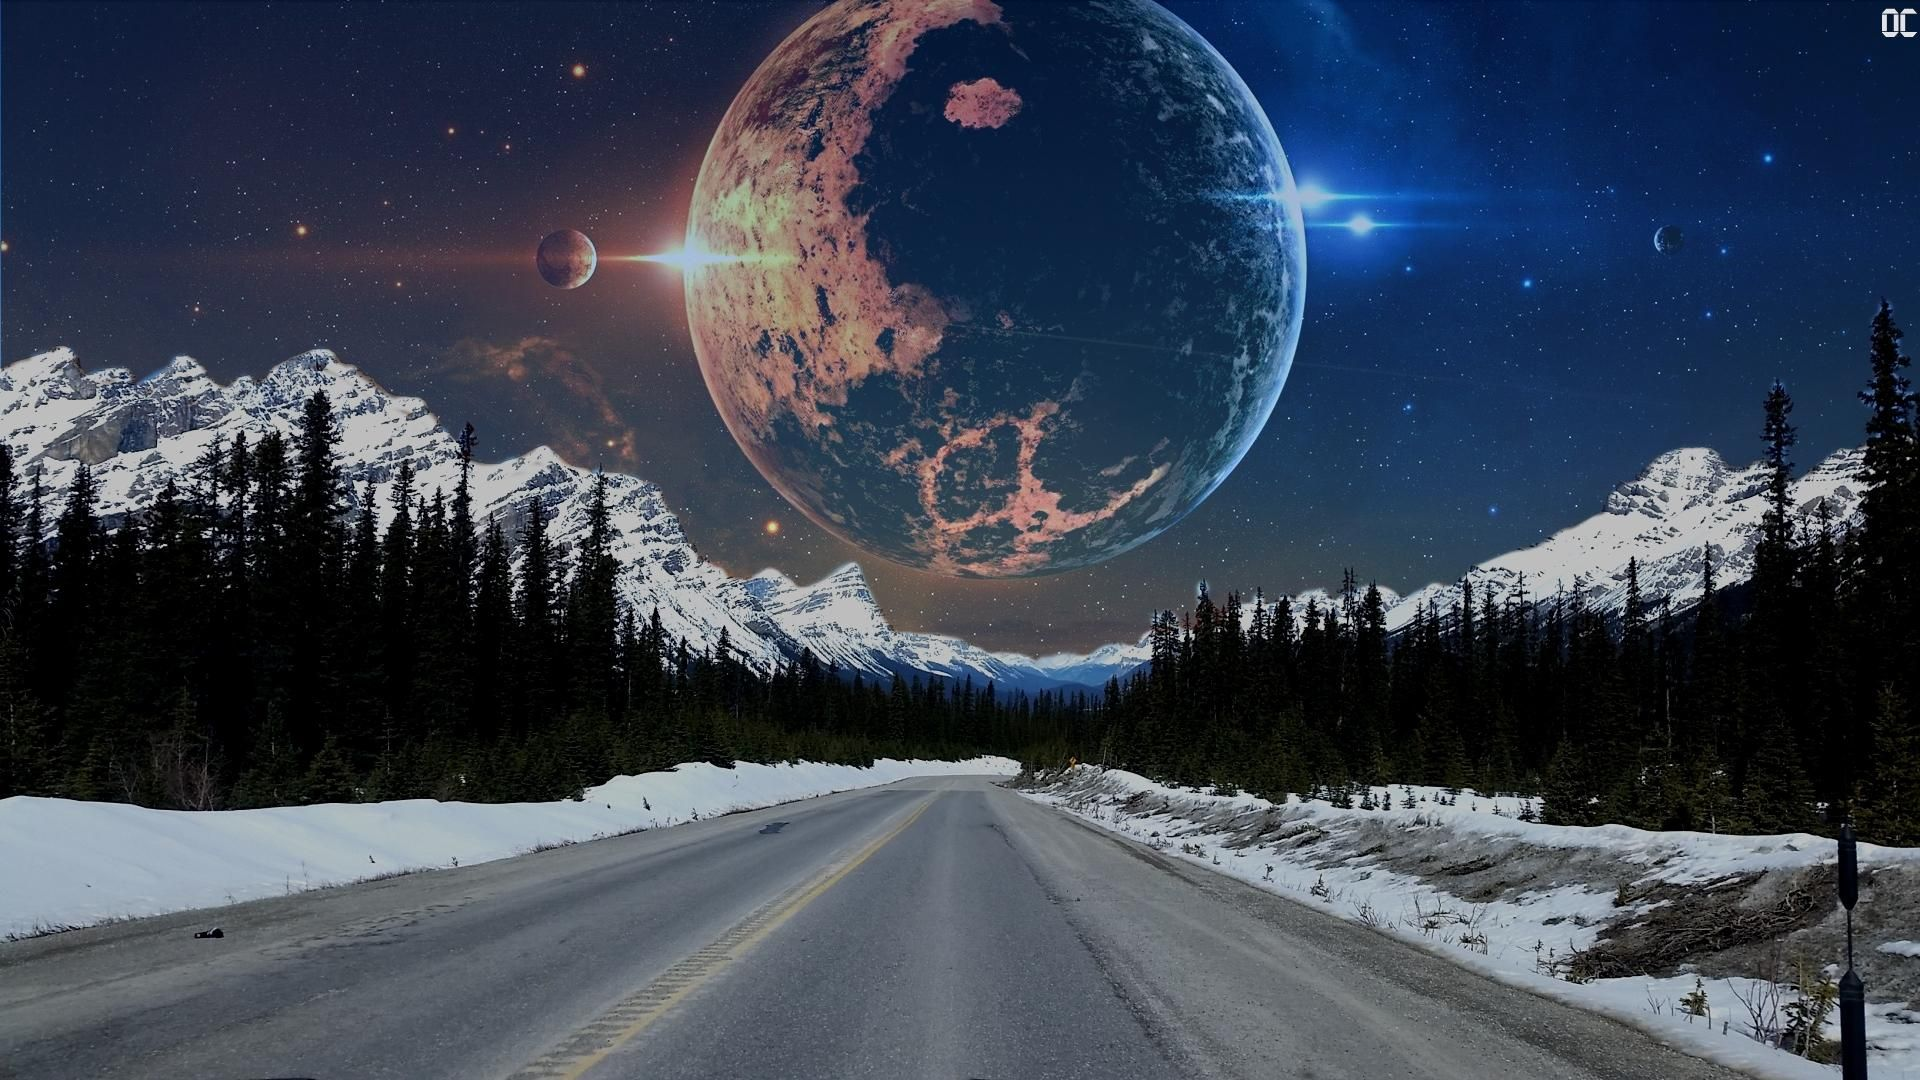 Highway To Space 1920 X 1080 Via Classy Bro Cool Wallpaper High Quality Wallpapers Wallpaper